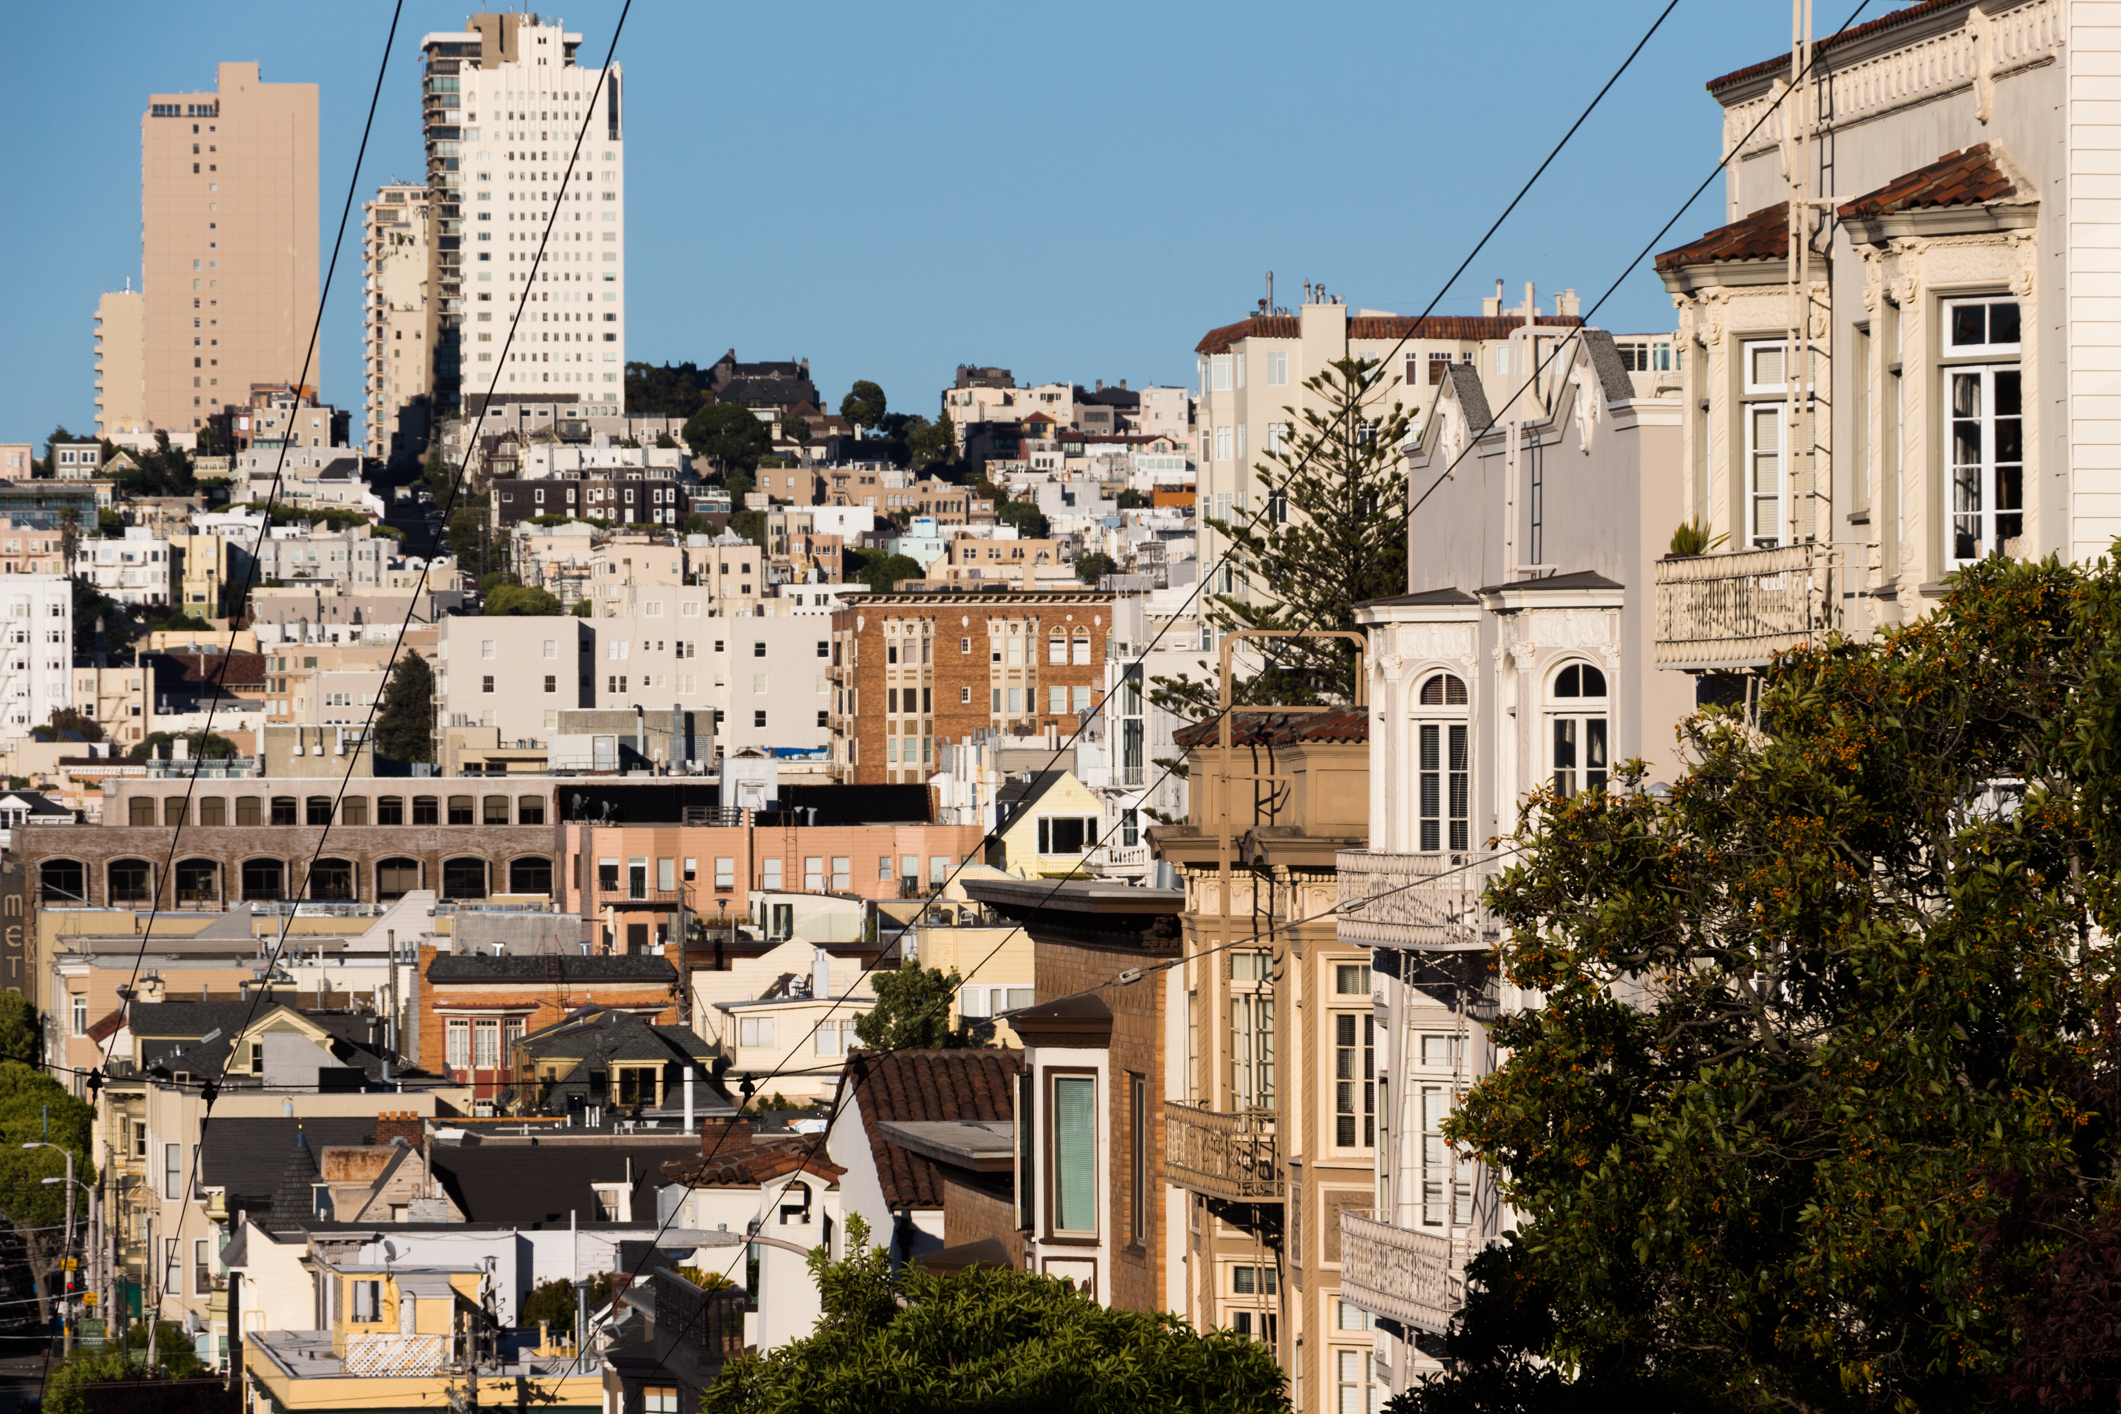 View of Russian Hill